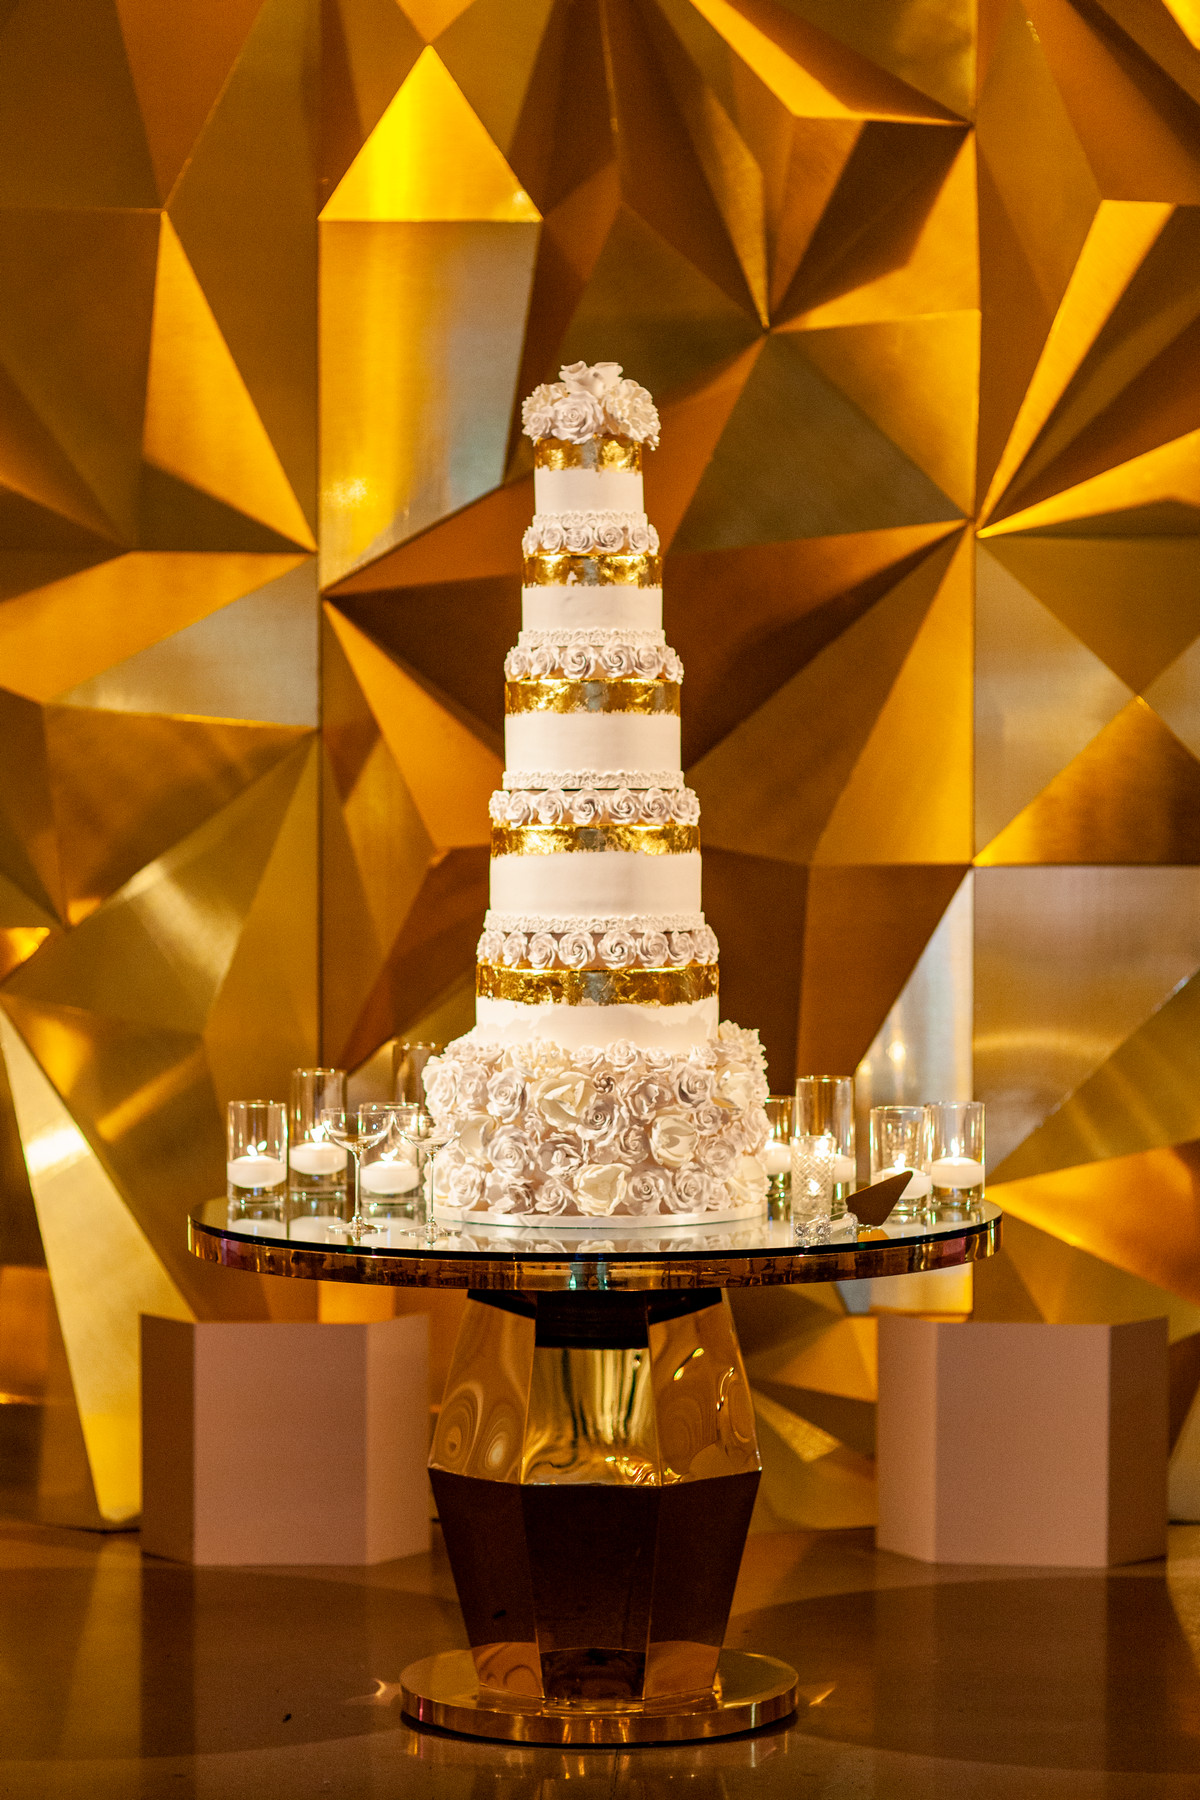 Six tier wedding cake with gold ribbon and white roses -John and Joseph Photography